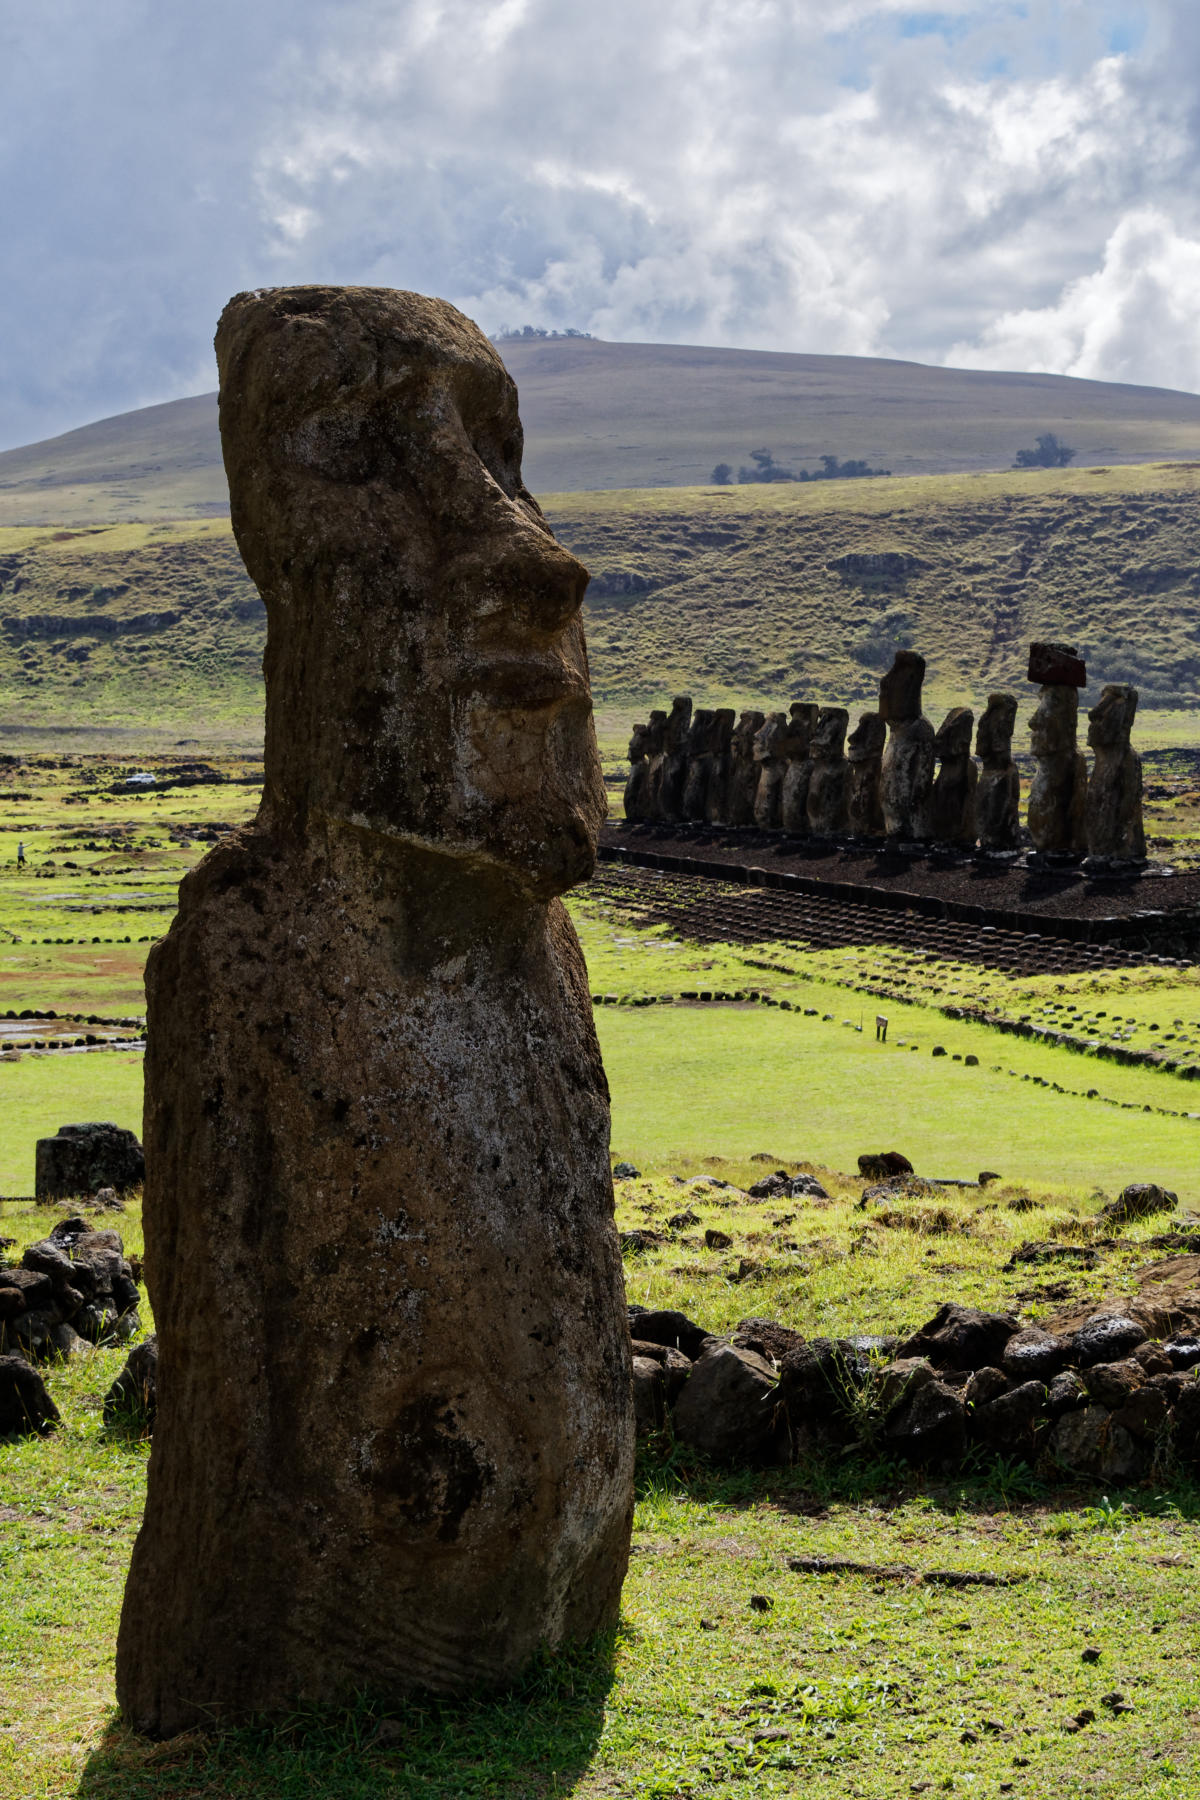 The travelling moai